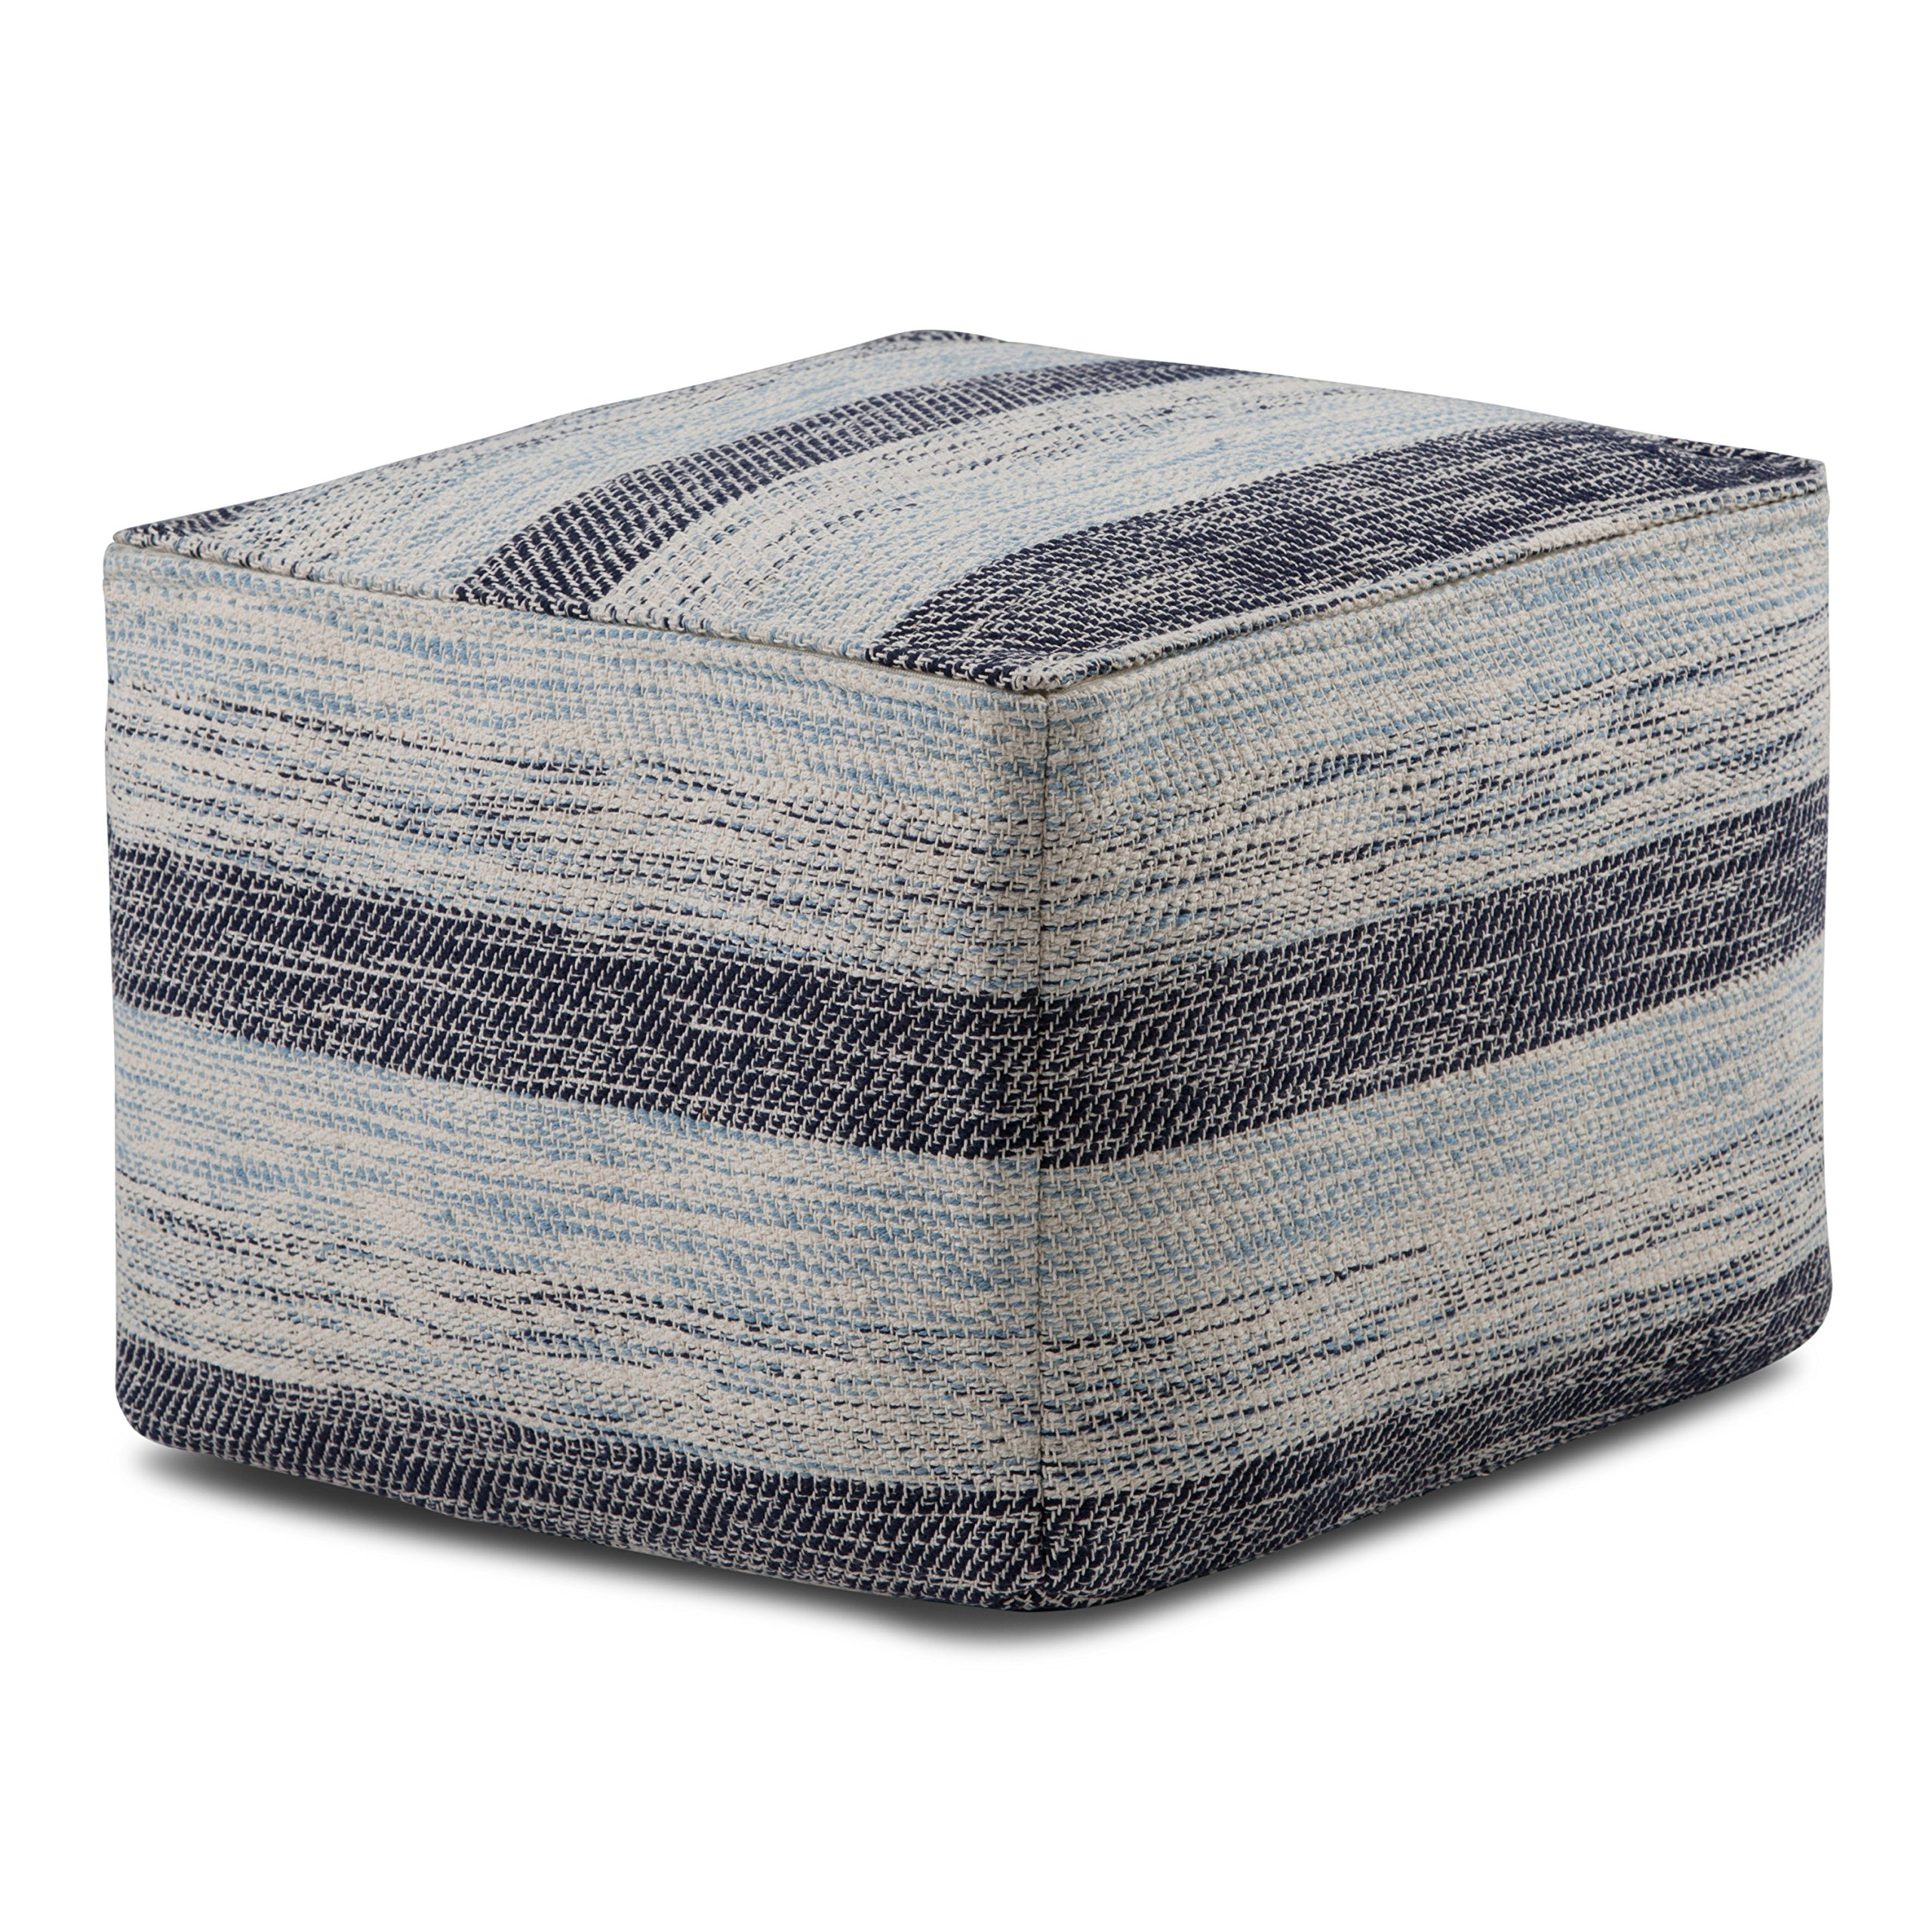 Simpli Home Clay Square Pouf, Patterned Blue Melange